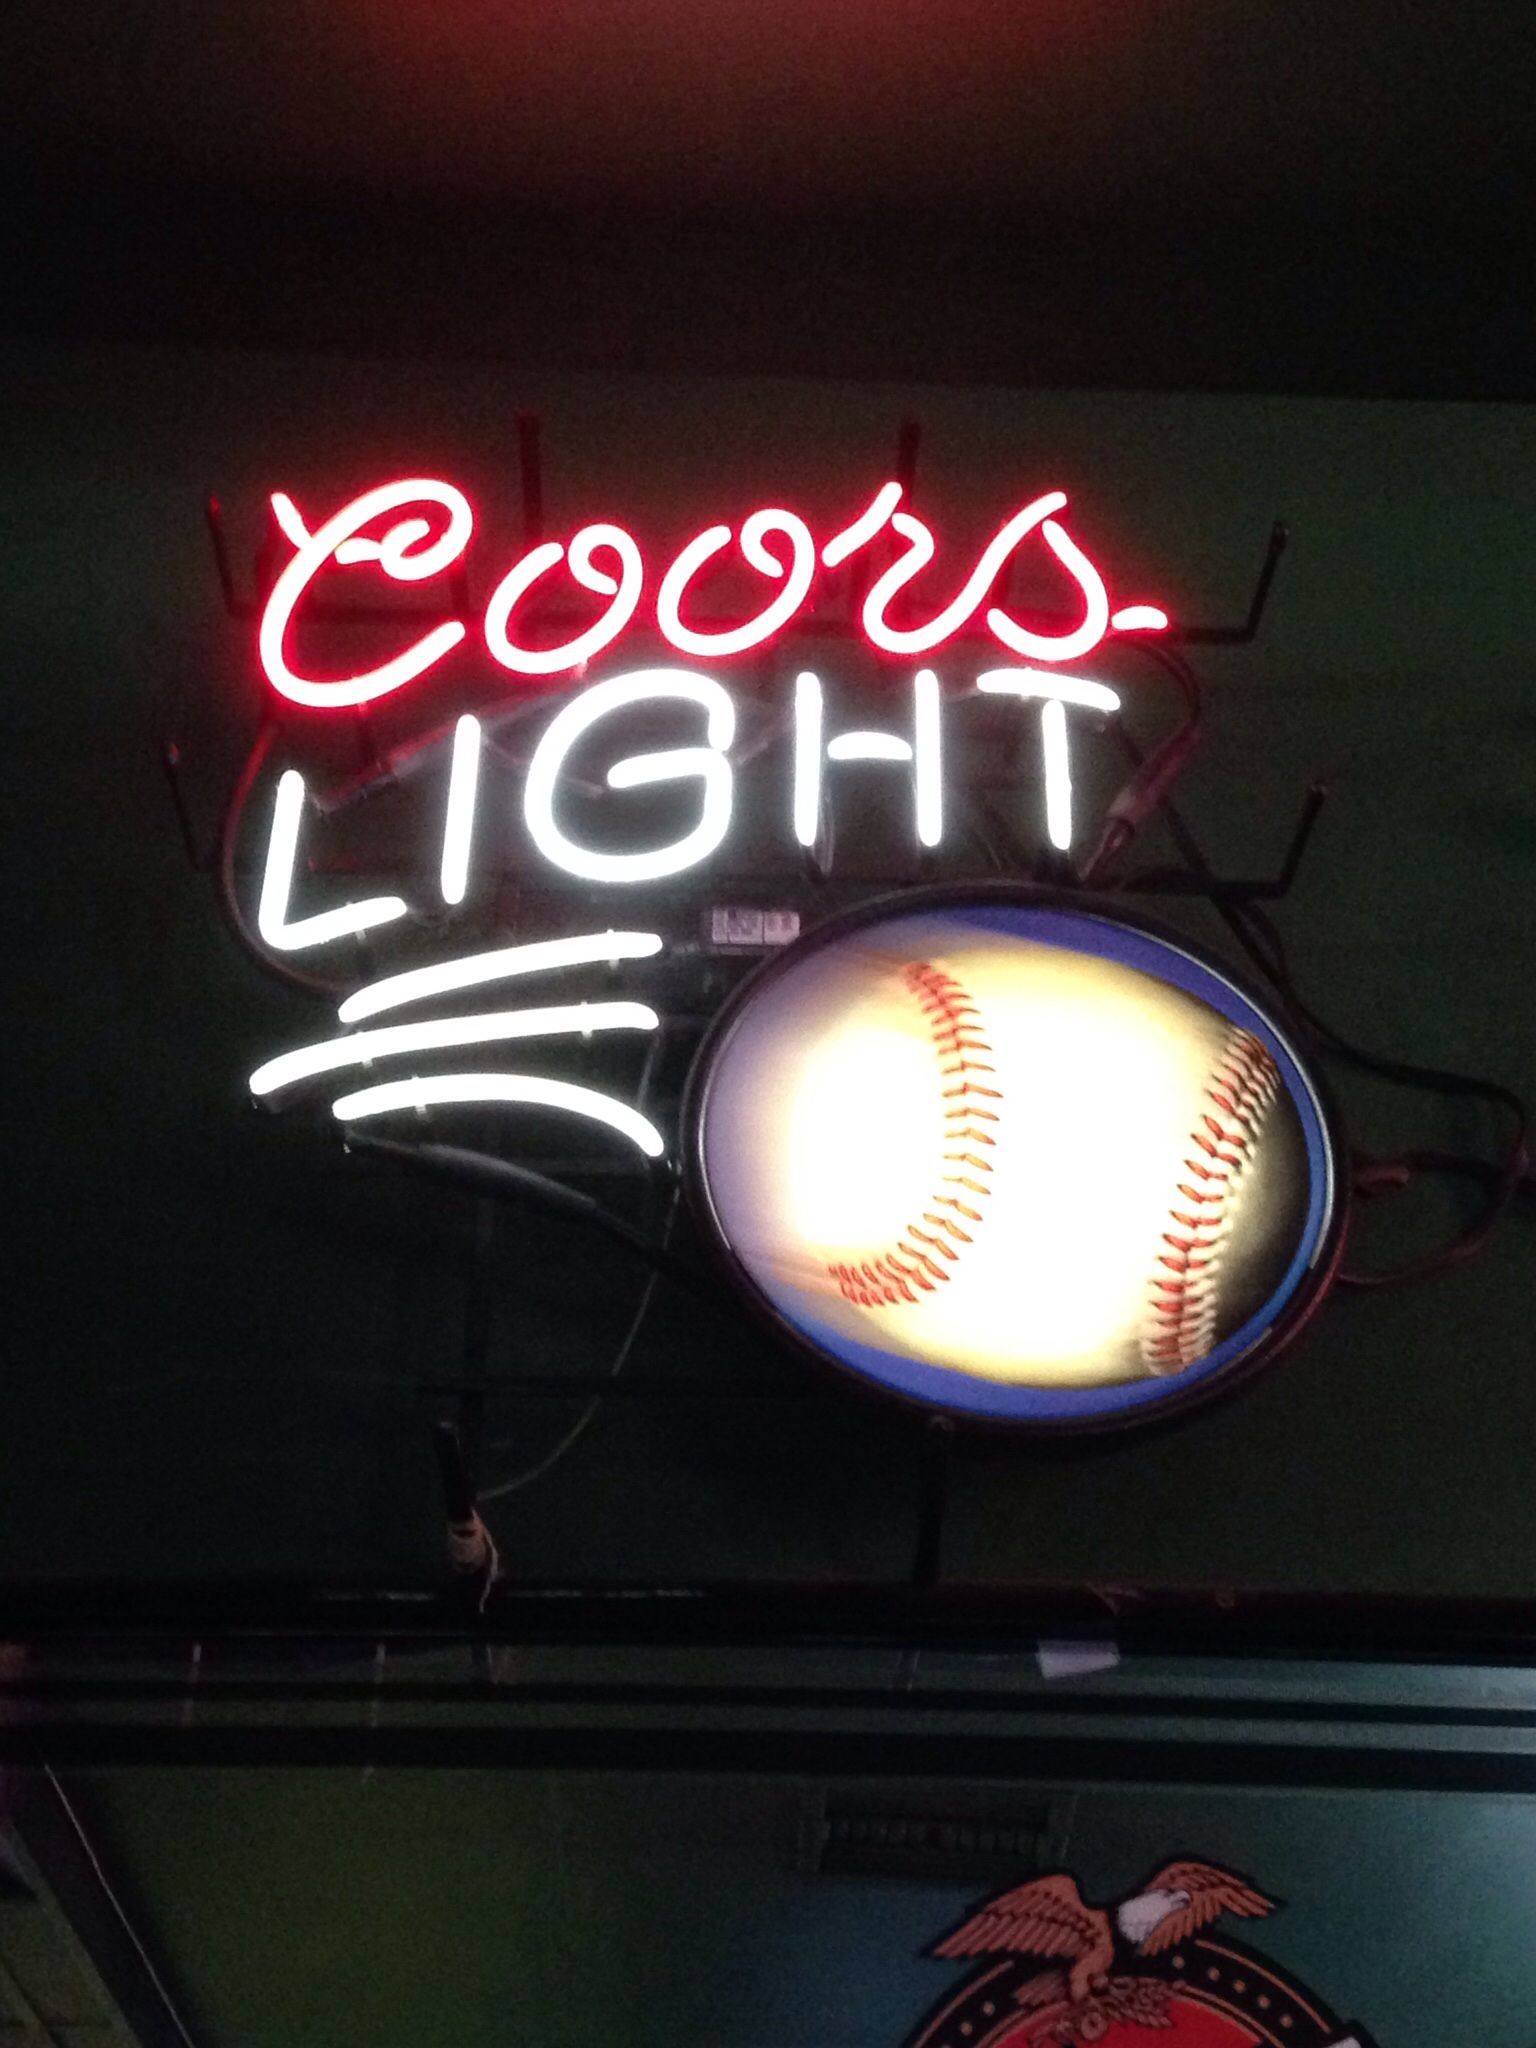 Neon beer sign coors light baseball neon beer signs neon beer sign coors light baseball aloadofball Images